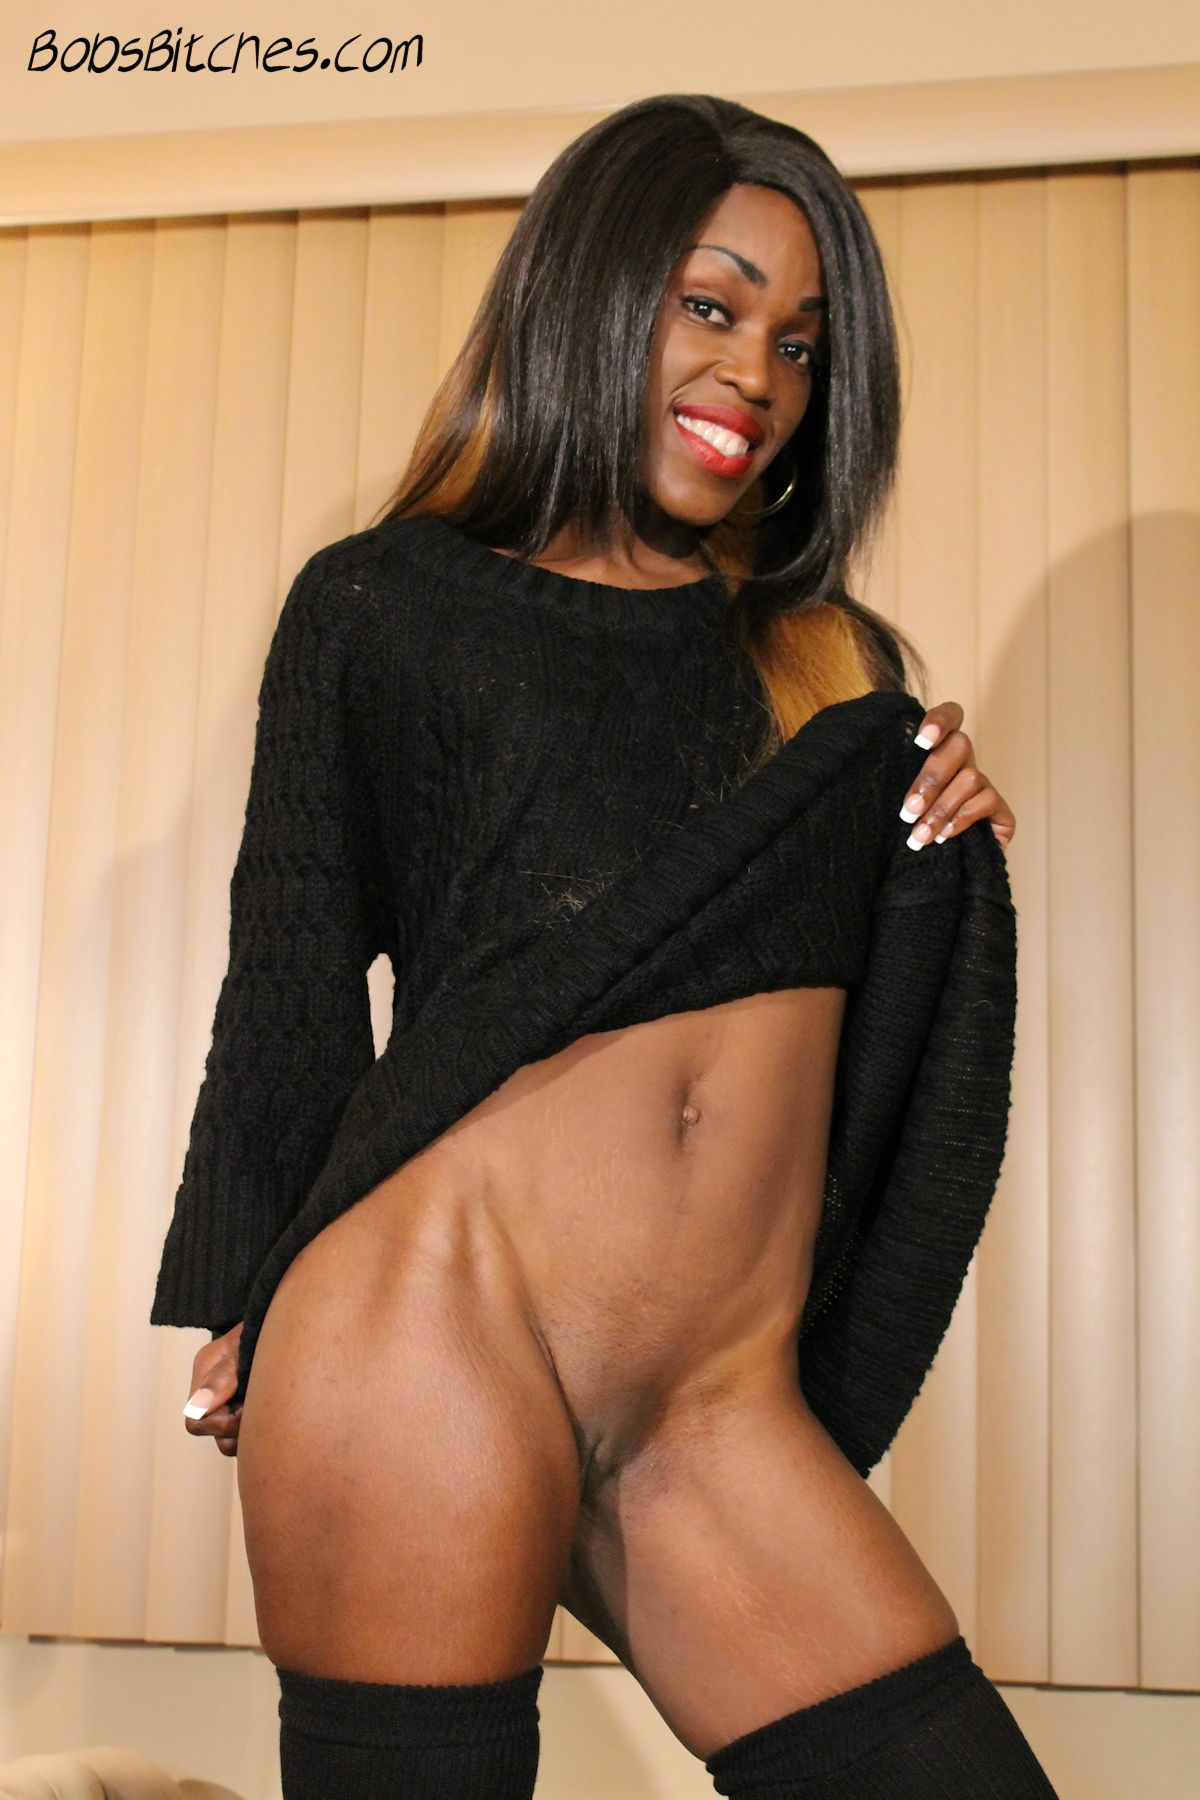 Dominican ebony beauty, Arva Nalga, pulls up her skirt to show her bald pussy.